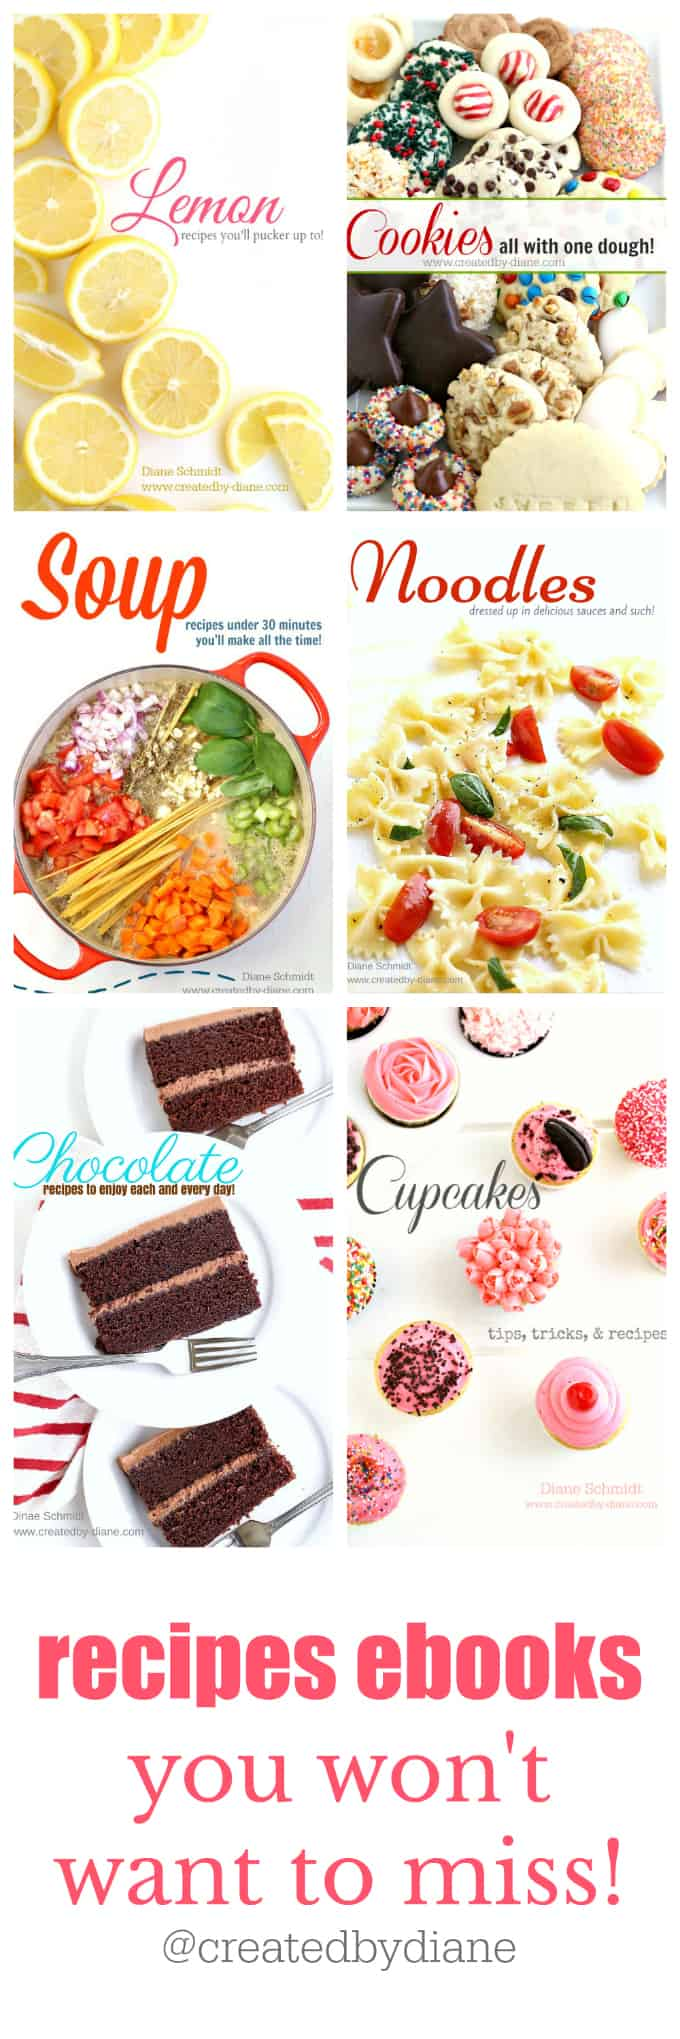 recipe ebooks you won't want to miss from @createdbydiane #recipes #ebooks